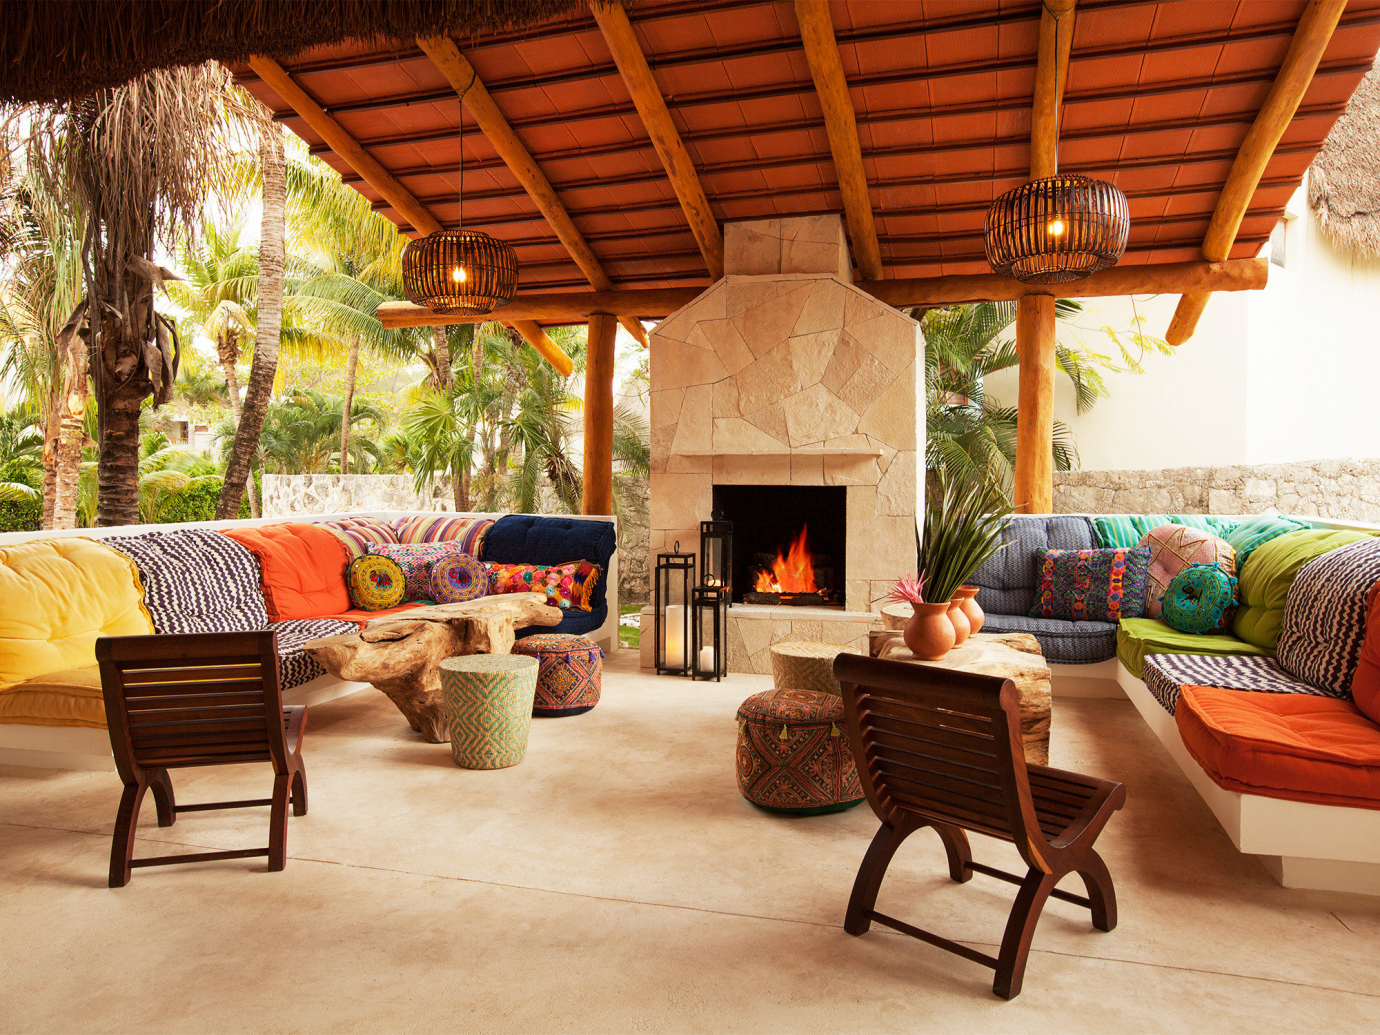 Warm open wall interior with bright colored couches and a fire place at Mahekal Beach Resort